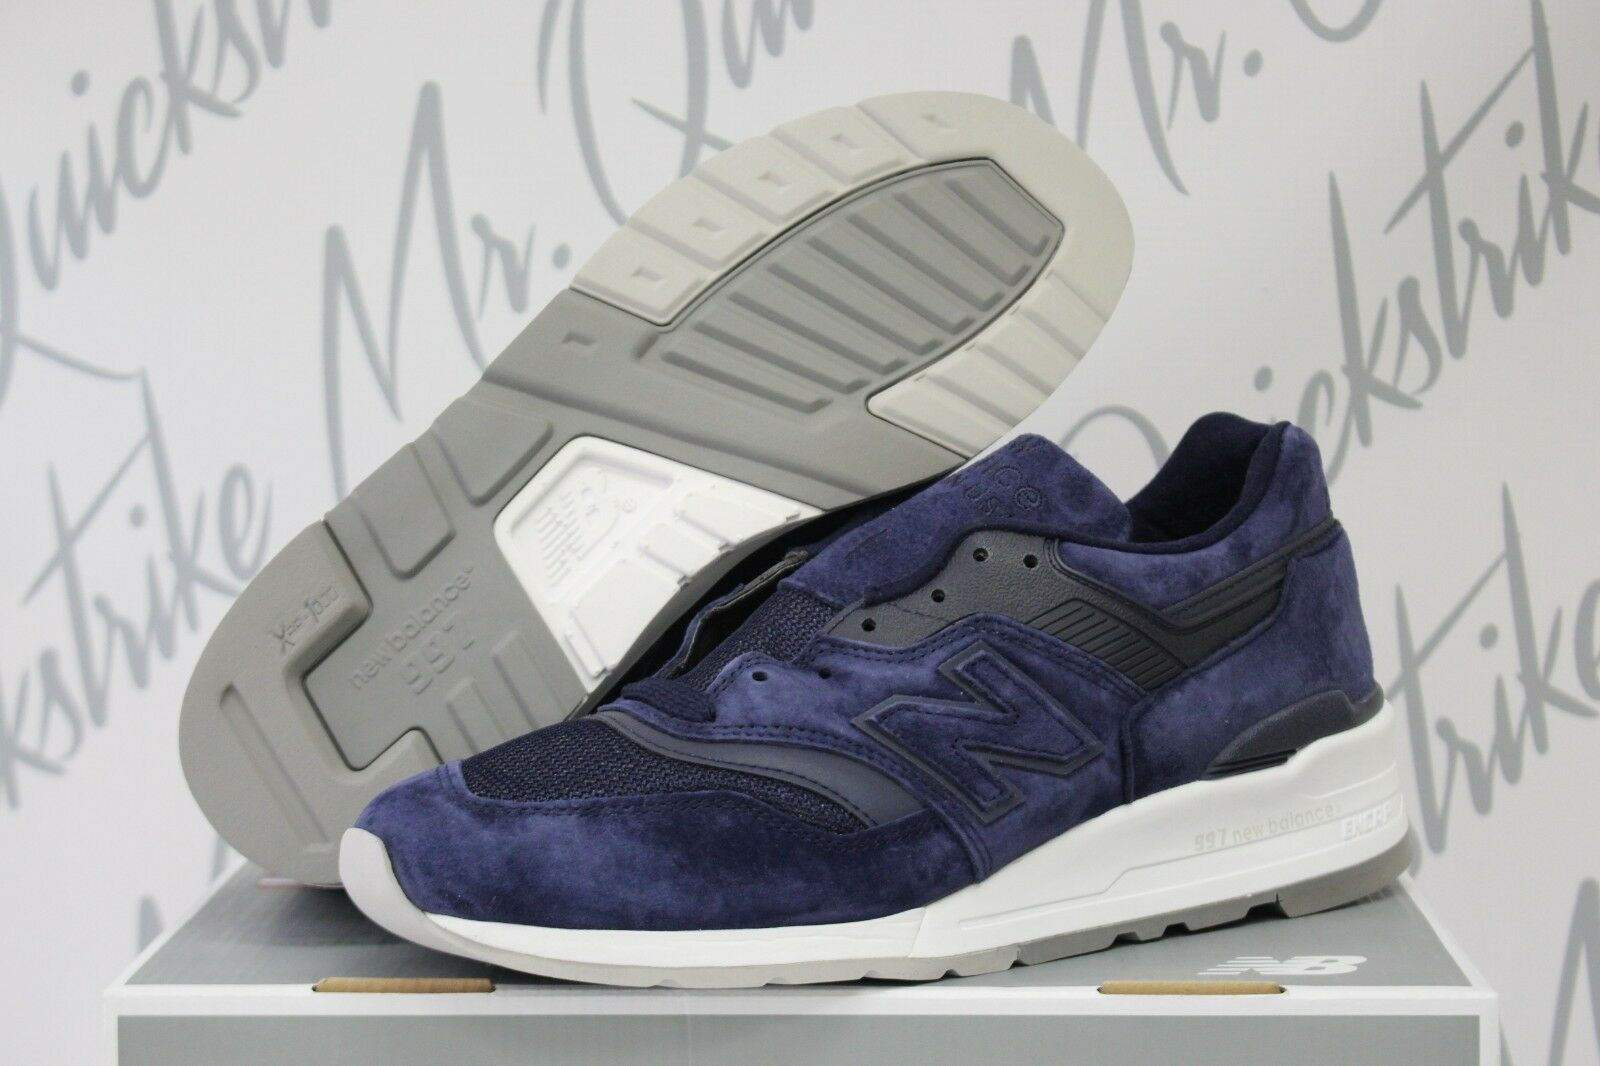 New balance 997 sz 8 made in usa navy blau - graue, weiße m997co